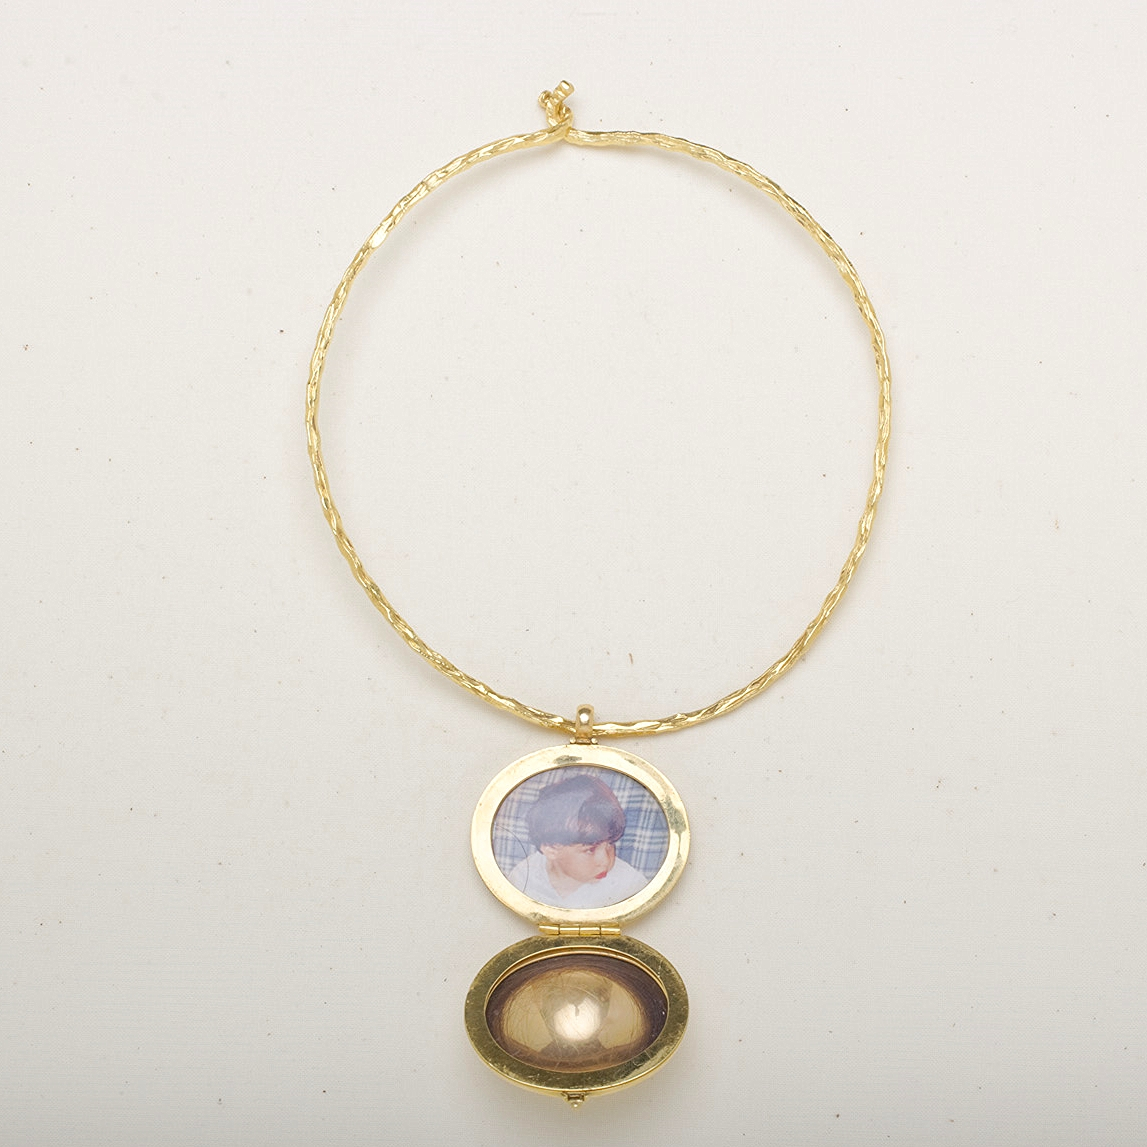 Marla's personal locket, which inspired the birth of her collection.